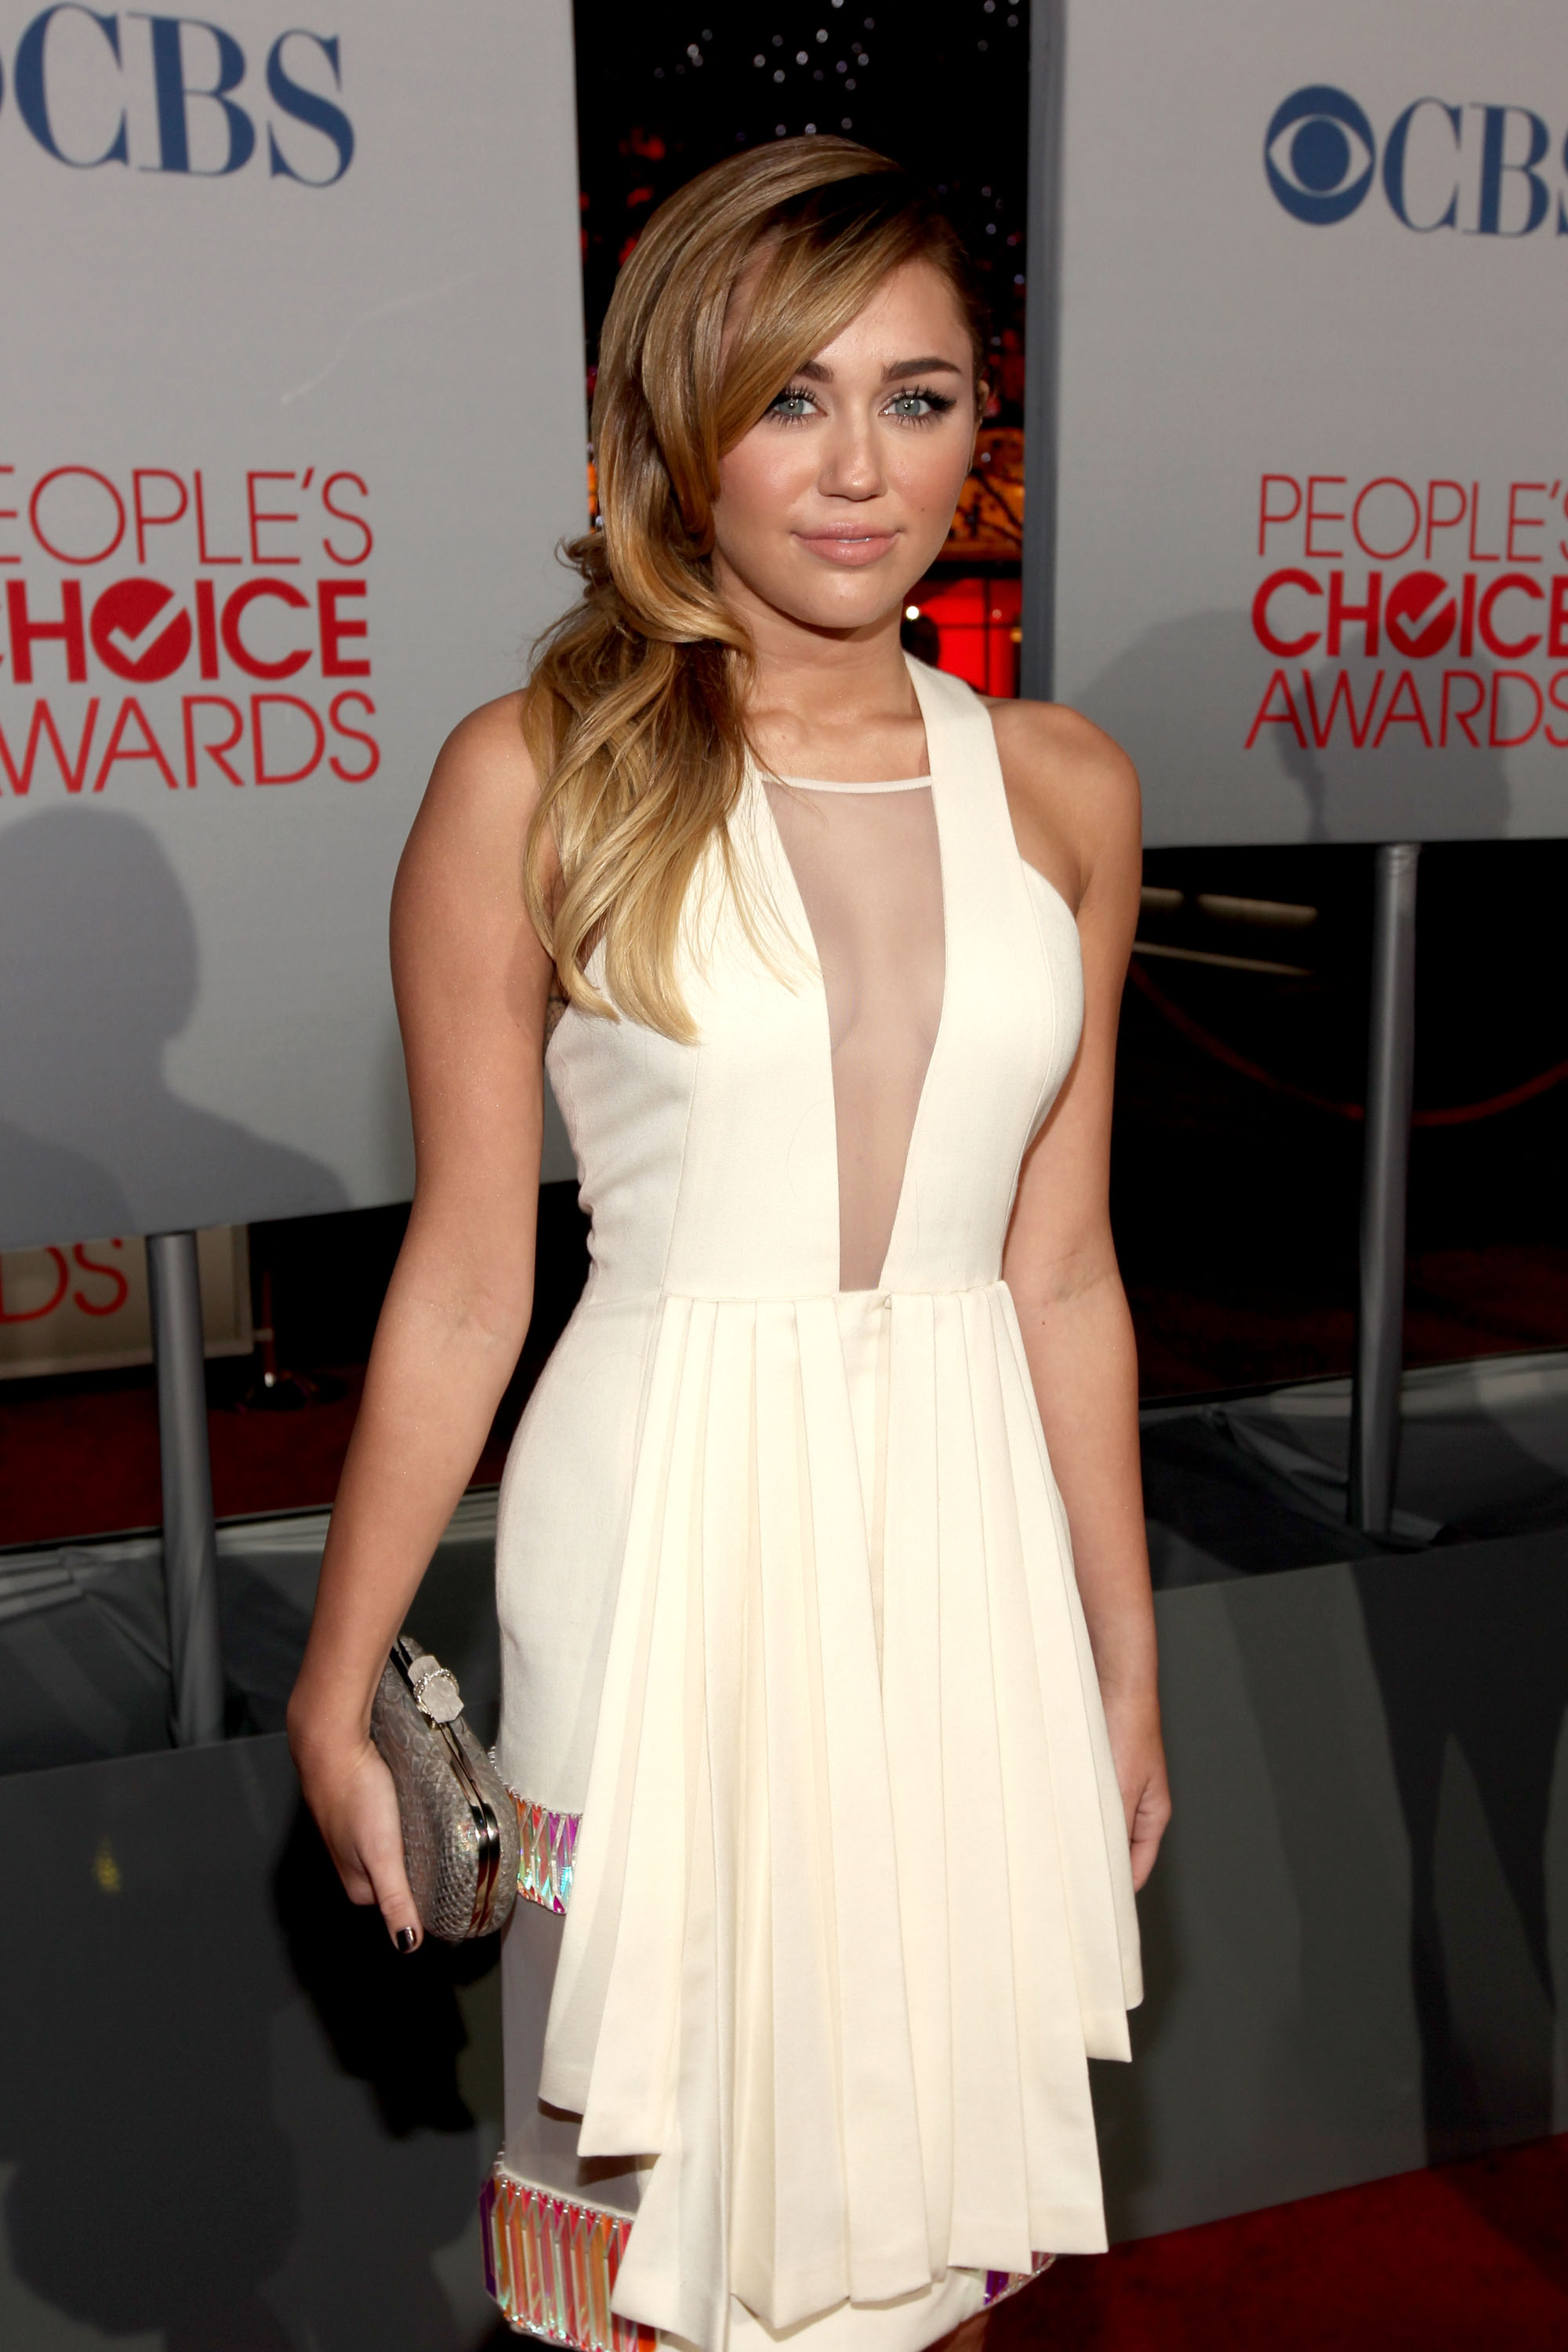 Miley Cyrus cleavy in white dress at 2012 Peoples Choice Awards-08 ...